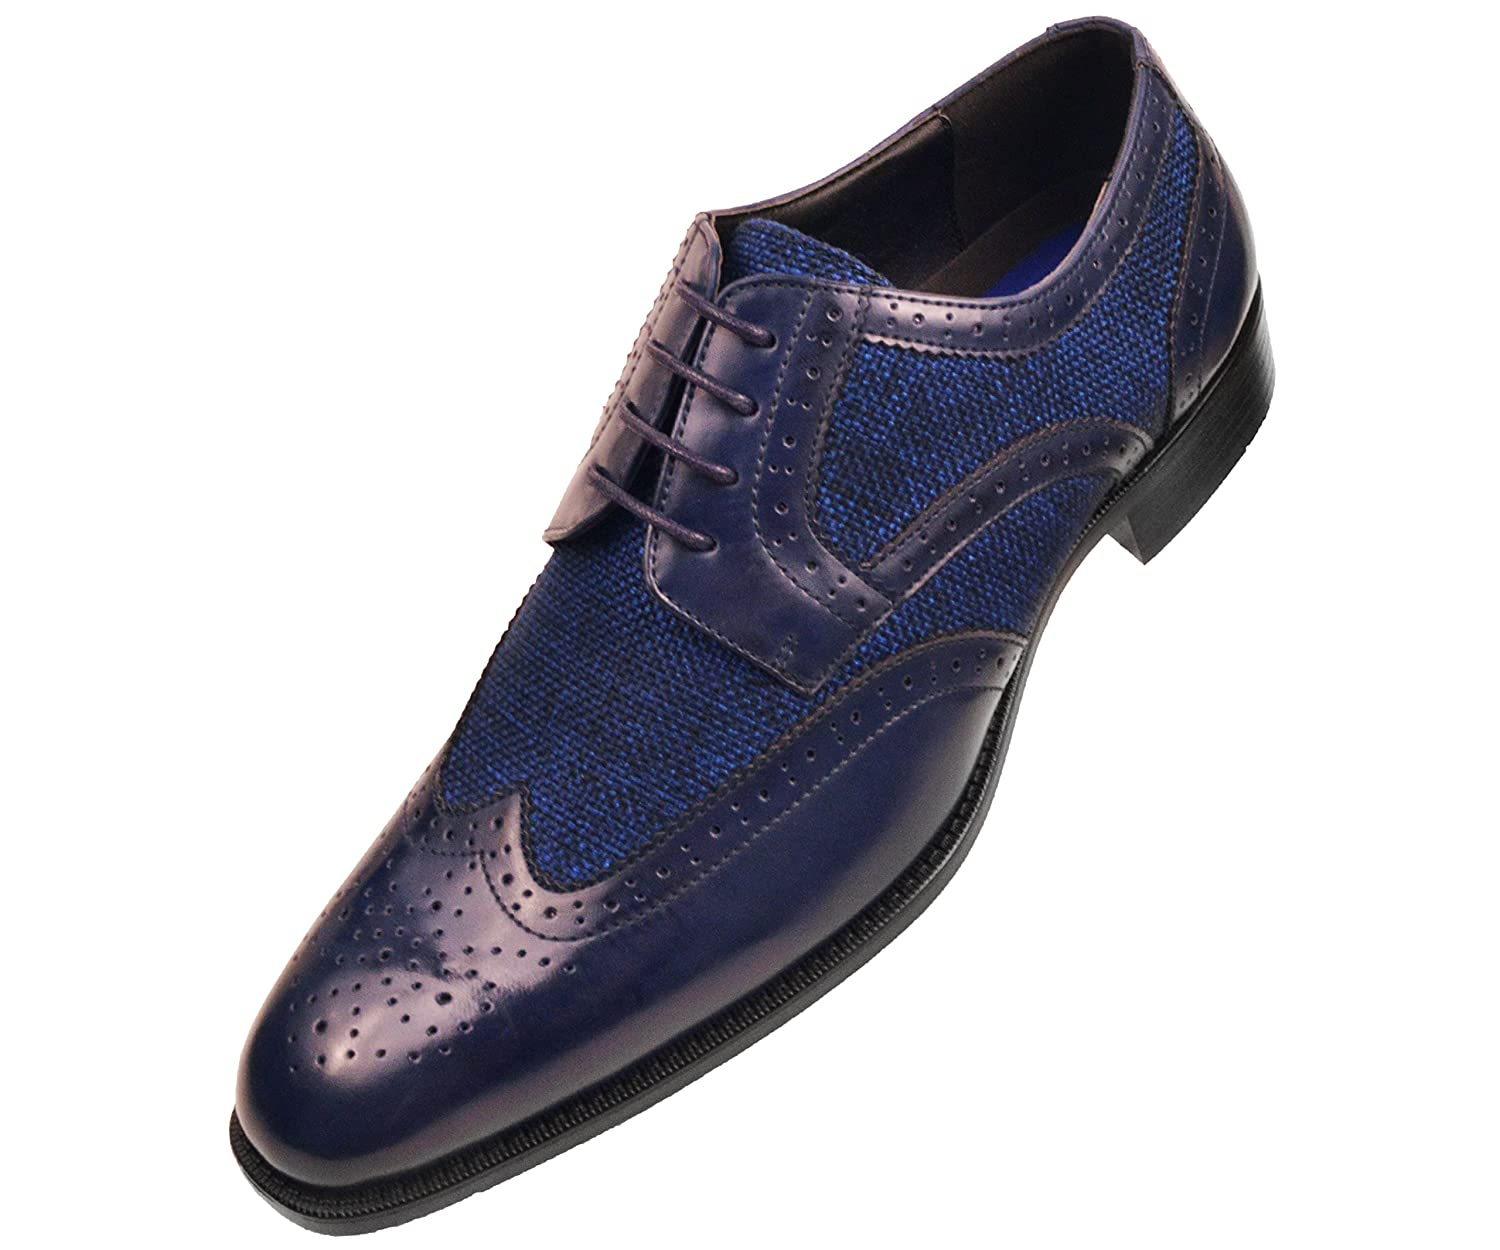 1950s Style Mens Shoes Bolano Mens Navy Blue Smooth and Twill Wingtip Brogue Oxford Dress Shoe with Perforated Design: Keller-002 $59.99 AT vintagedancer.com